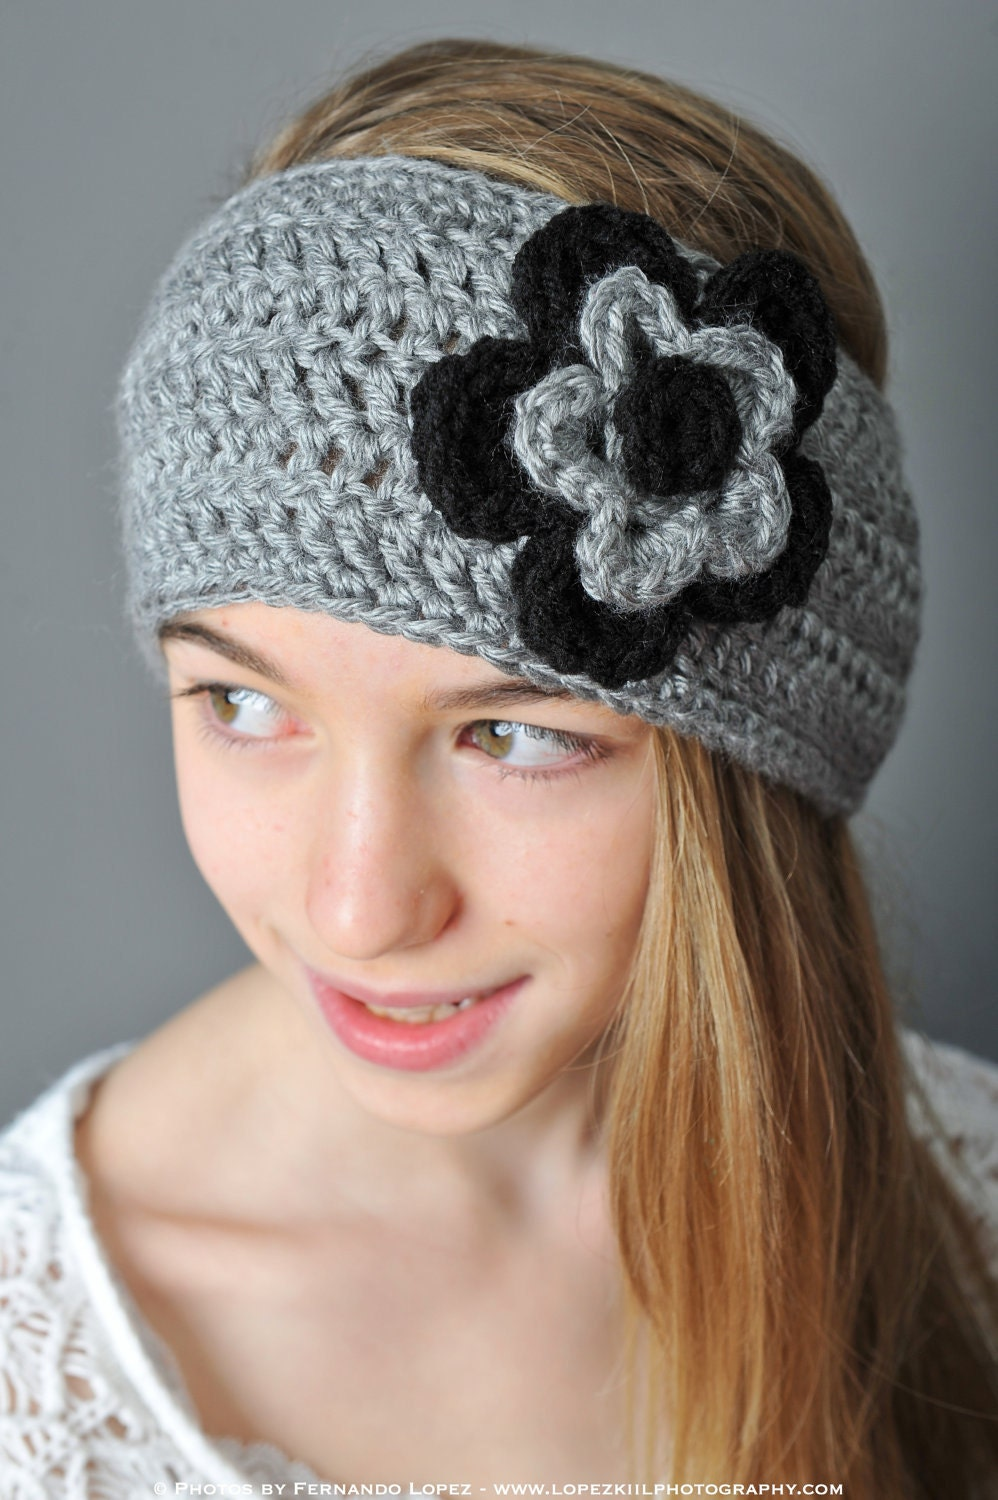 Free Crochet Pattern Headband Ear Warmer Button : Crochet Pattern Ear Warmer/Headband with Layered Flowers in